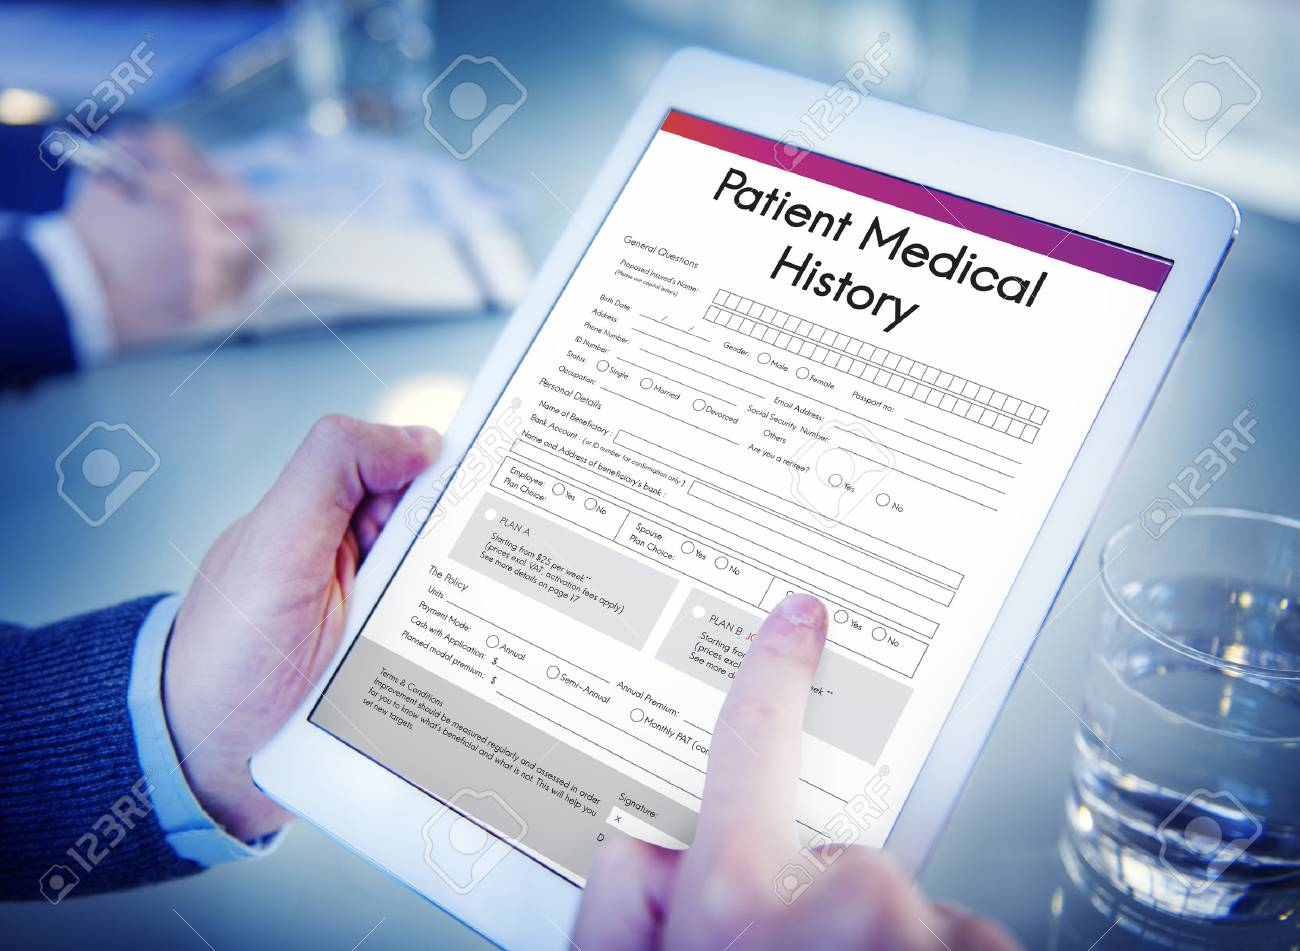 patient medical history form concept stock photo picture and